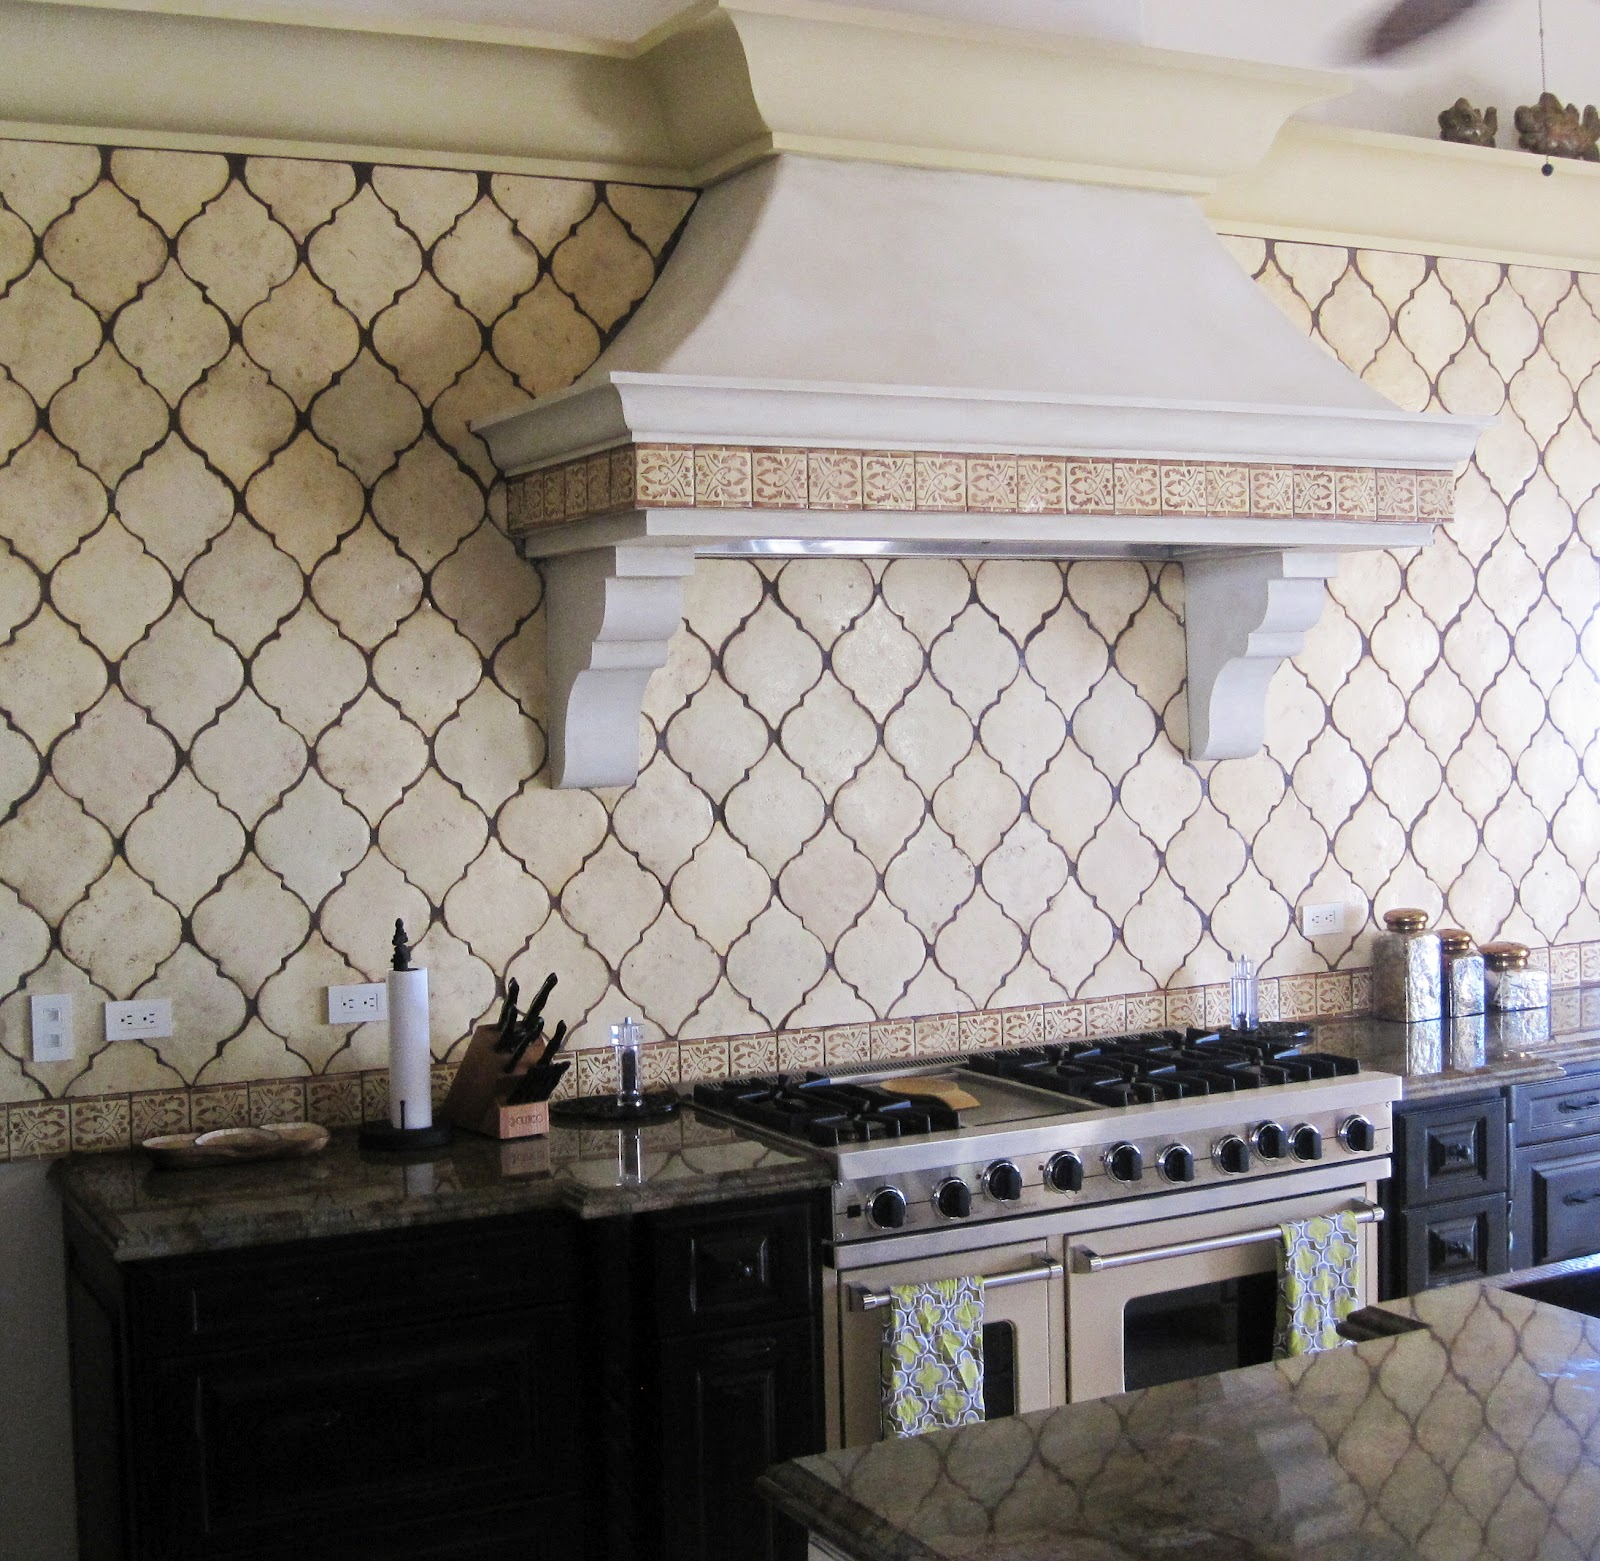 slate stove backsplash kitchen ideas html with Tile Terror on Azulejos Perfectos Para Tu Cocina Modelos Diversos likewise Brooks Custom additionally P10025478 likewise 8 Stunning Kitchen Islands b 7520488 also JVW53.